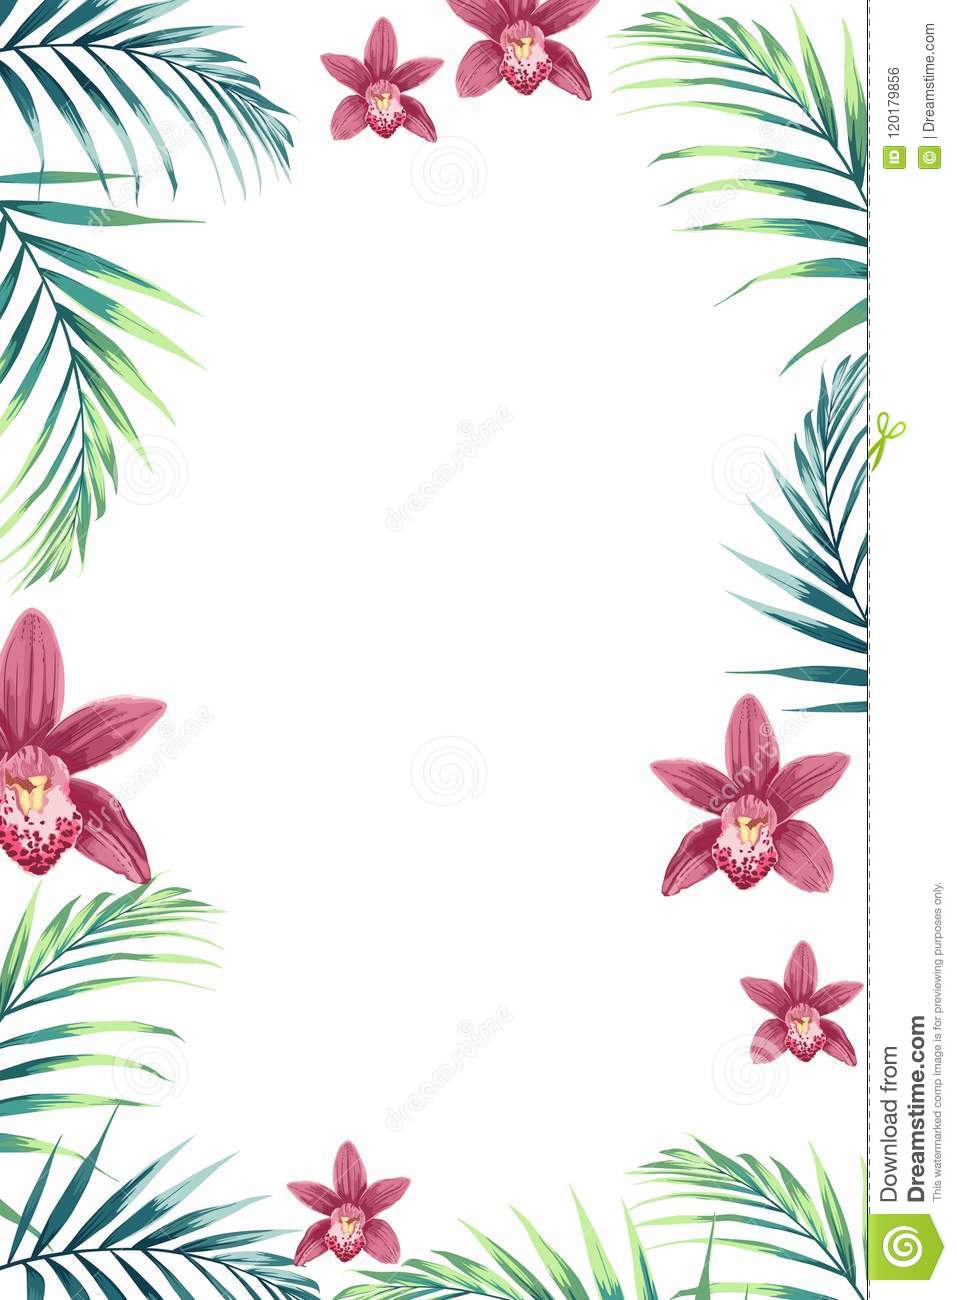 tropical design border frame template with green jungle palm tree